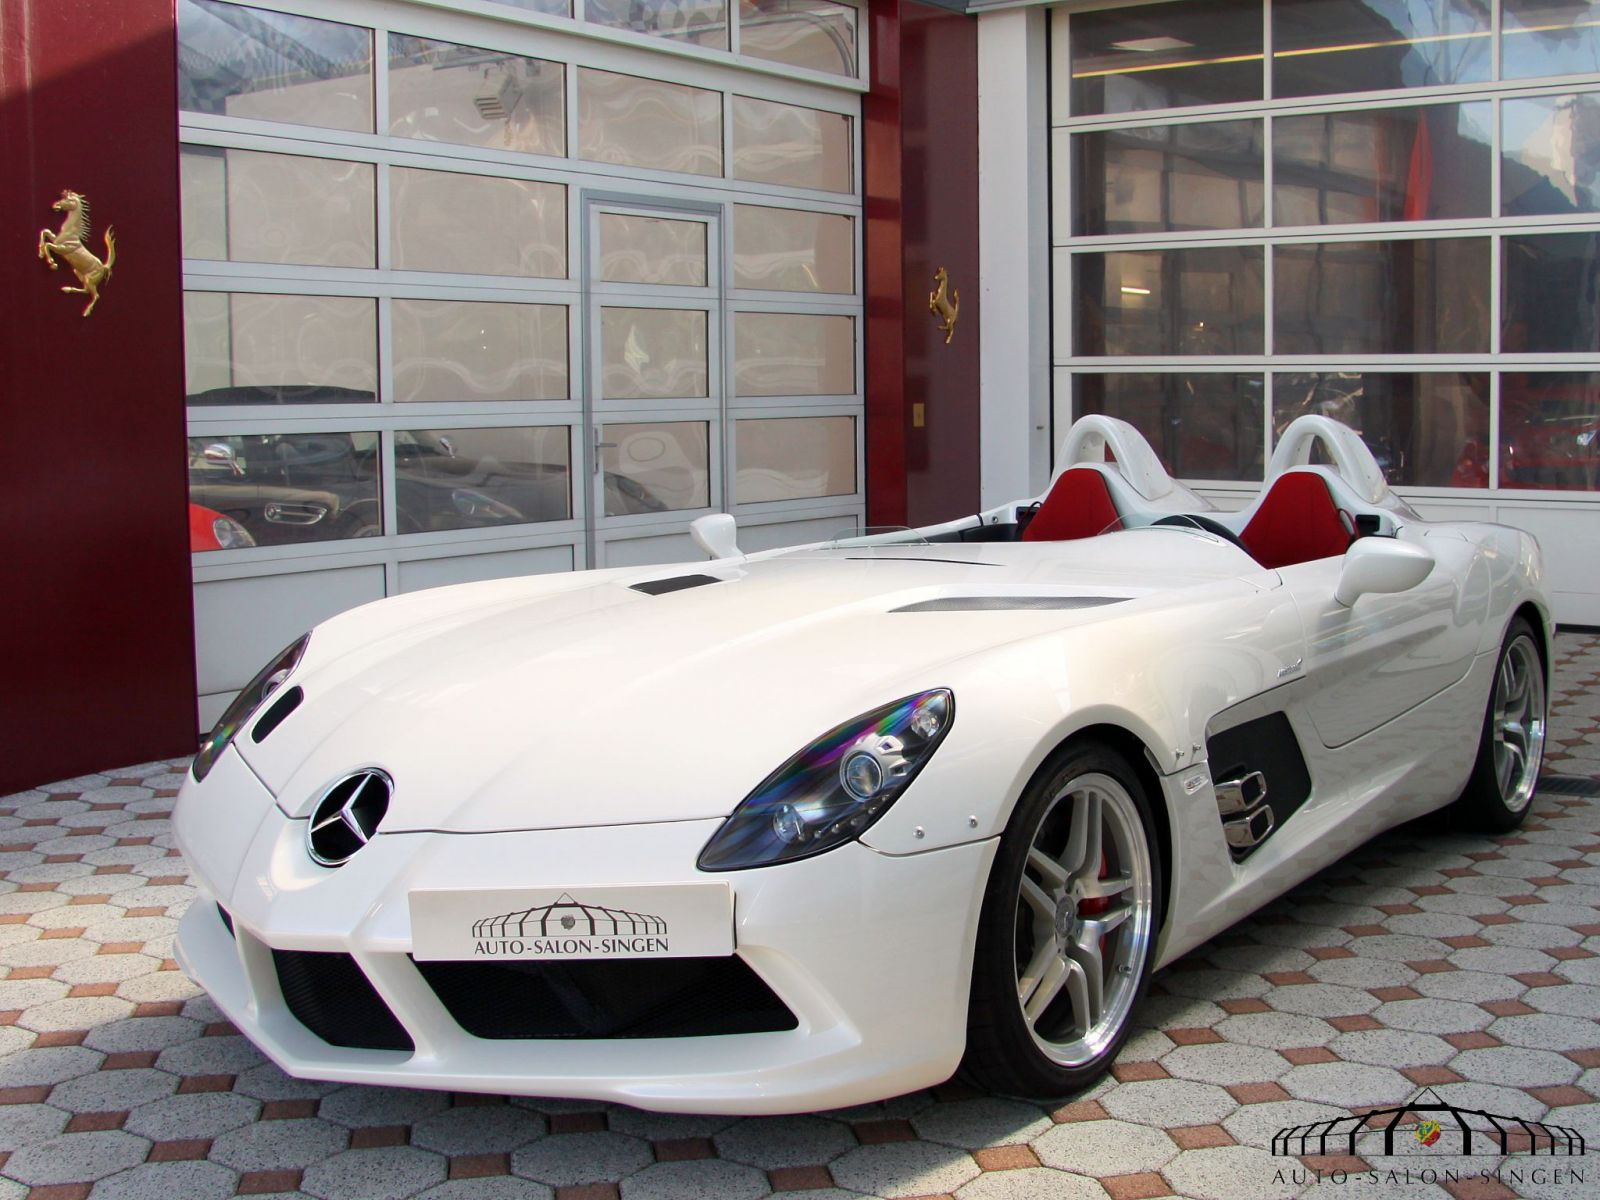 mercedes benz slr stirling moss roadster auto salon singen. Black Bedroom Furniture Sets. Home Design Ideas